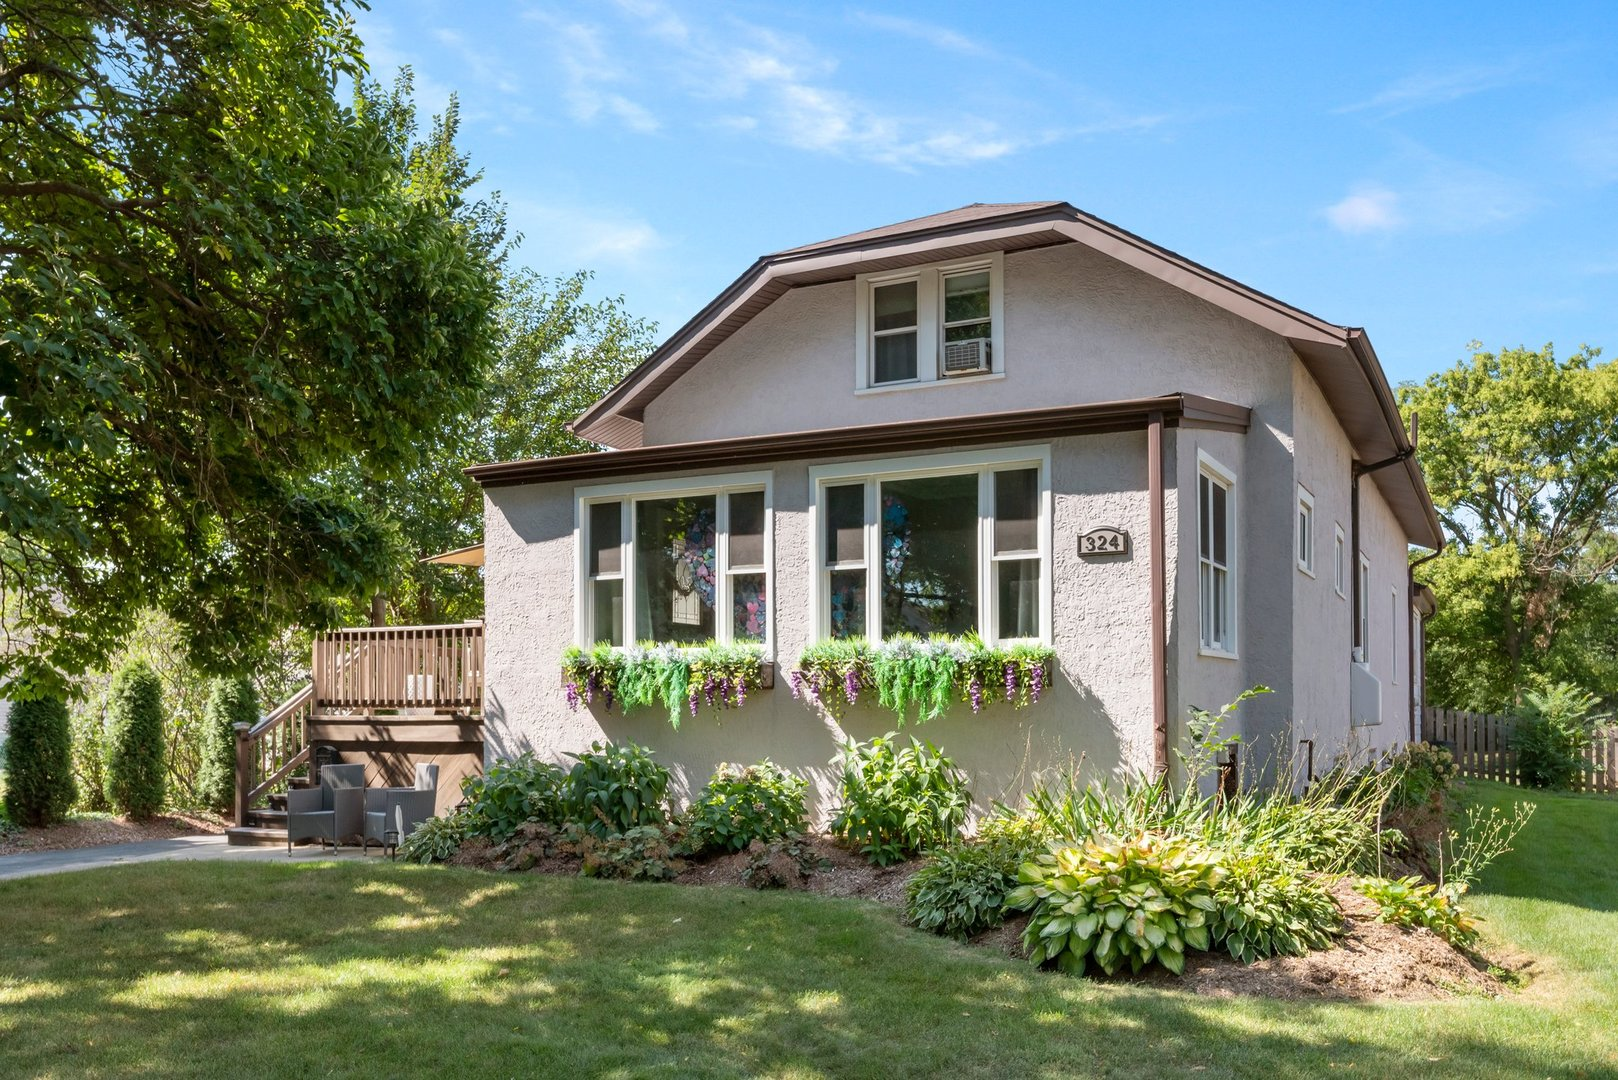 Craftsman style 5 bedroom bungalow on a massive 64x249 ft lot in ultra desirable South Villa Park location is an extreme value! The main  level is light and bright, has a terrific floor plan that features handsome hardwood flooring, plaster molding, white trim and replacement windows.  Beautiful front deck/porch walks into a mudroom opening to a sprawling living room and large formal dining area. 2 spacious 1st floor bedrooms and full bath.  Office area off of living room. Trendy and  ample sized kitchen leads to a 18x12 first level family room looking out to park like fenced rear yard.  The 2nd level has 3 bedrooms, 2nd full bath and awesome den/ entertainment room. Ginormous basement has a terrific rec area, laundry room, and tons of stor